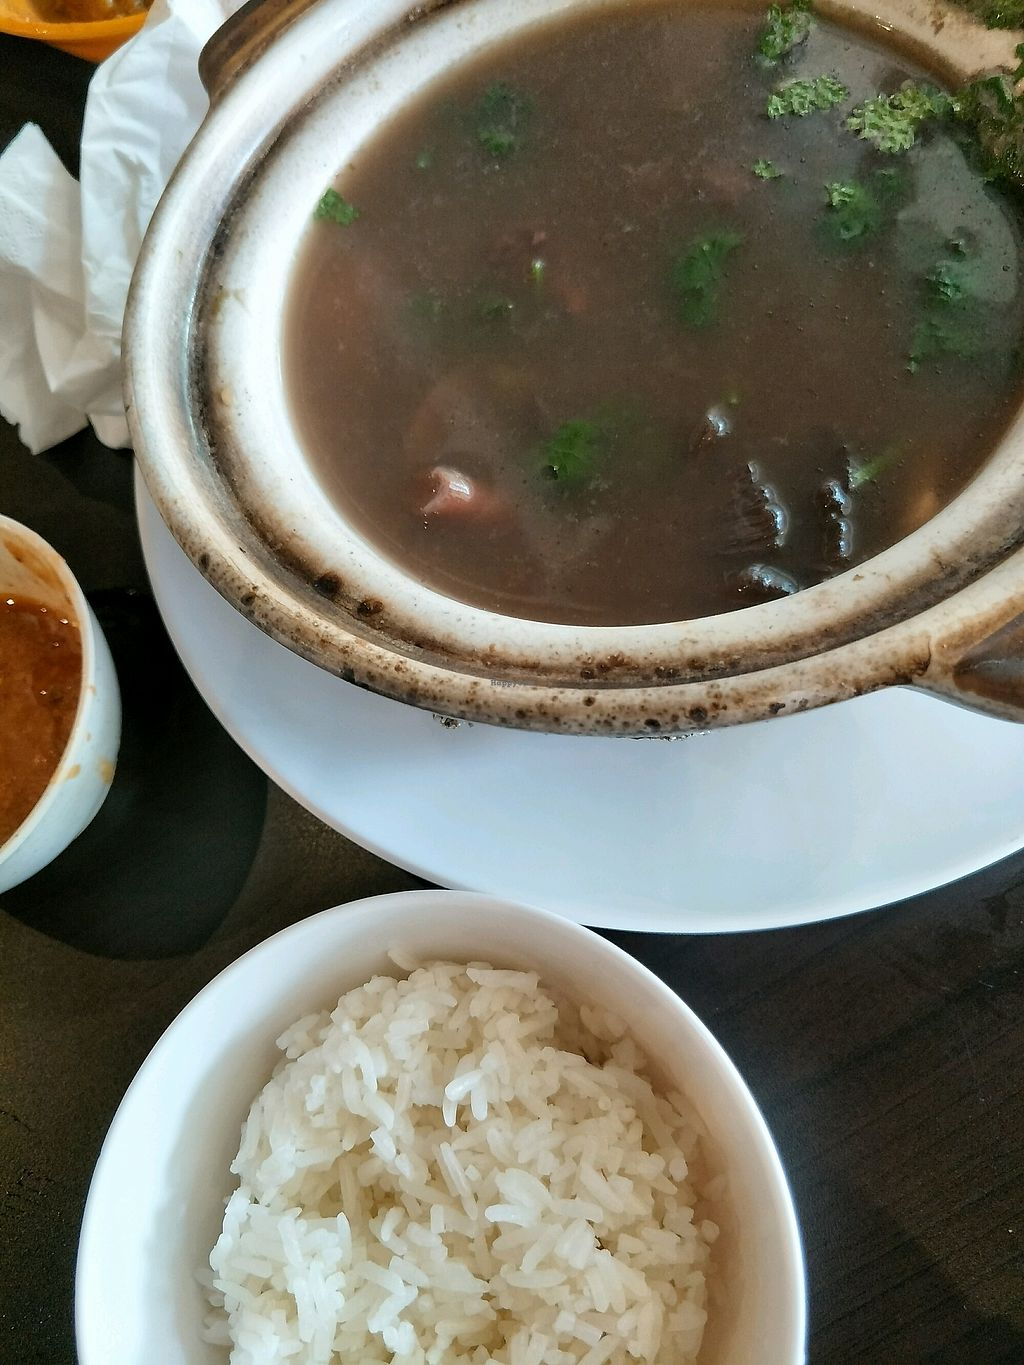 """Photo of Divine Realm Vegetarian Restaurant  by <a href=""""/members/profile/IvyTeng"""">IvyTeng</a> <br/>Black bean soup  <br/> March 22, 2018  - <a href='/contact/abuse/image/185/374229'>Report</a>"""